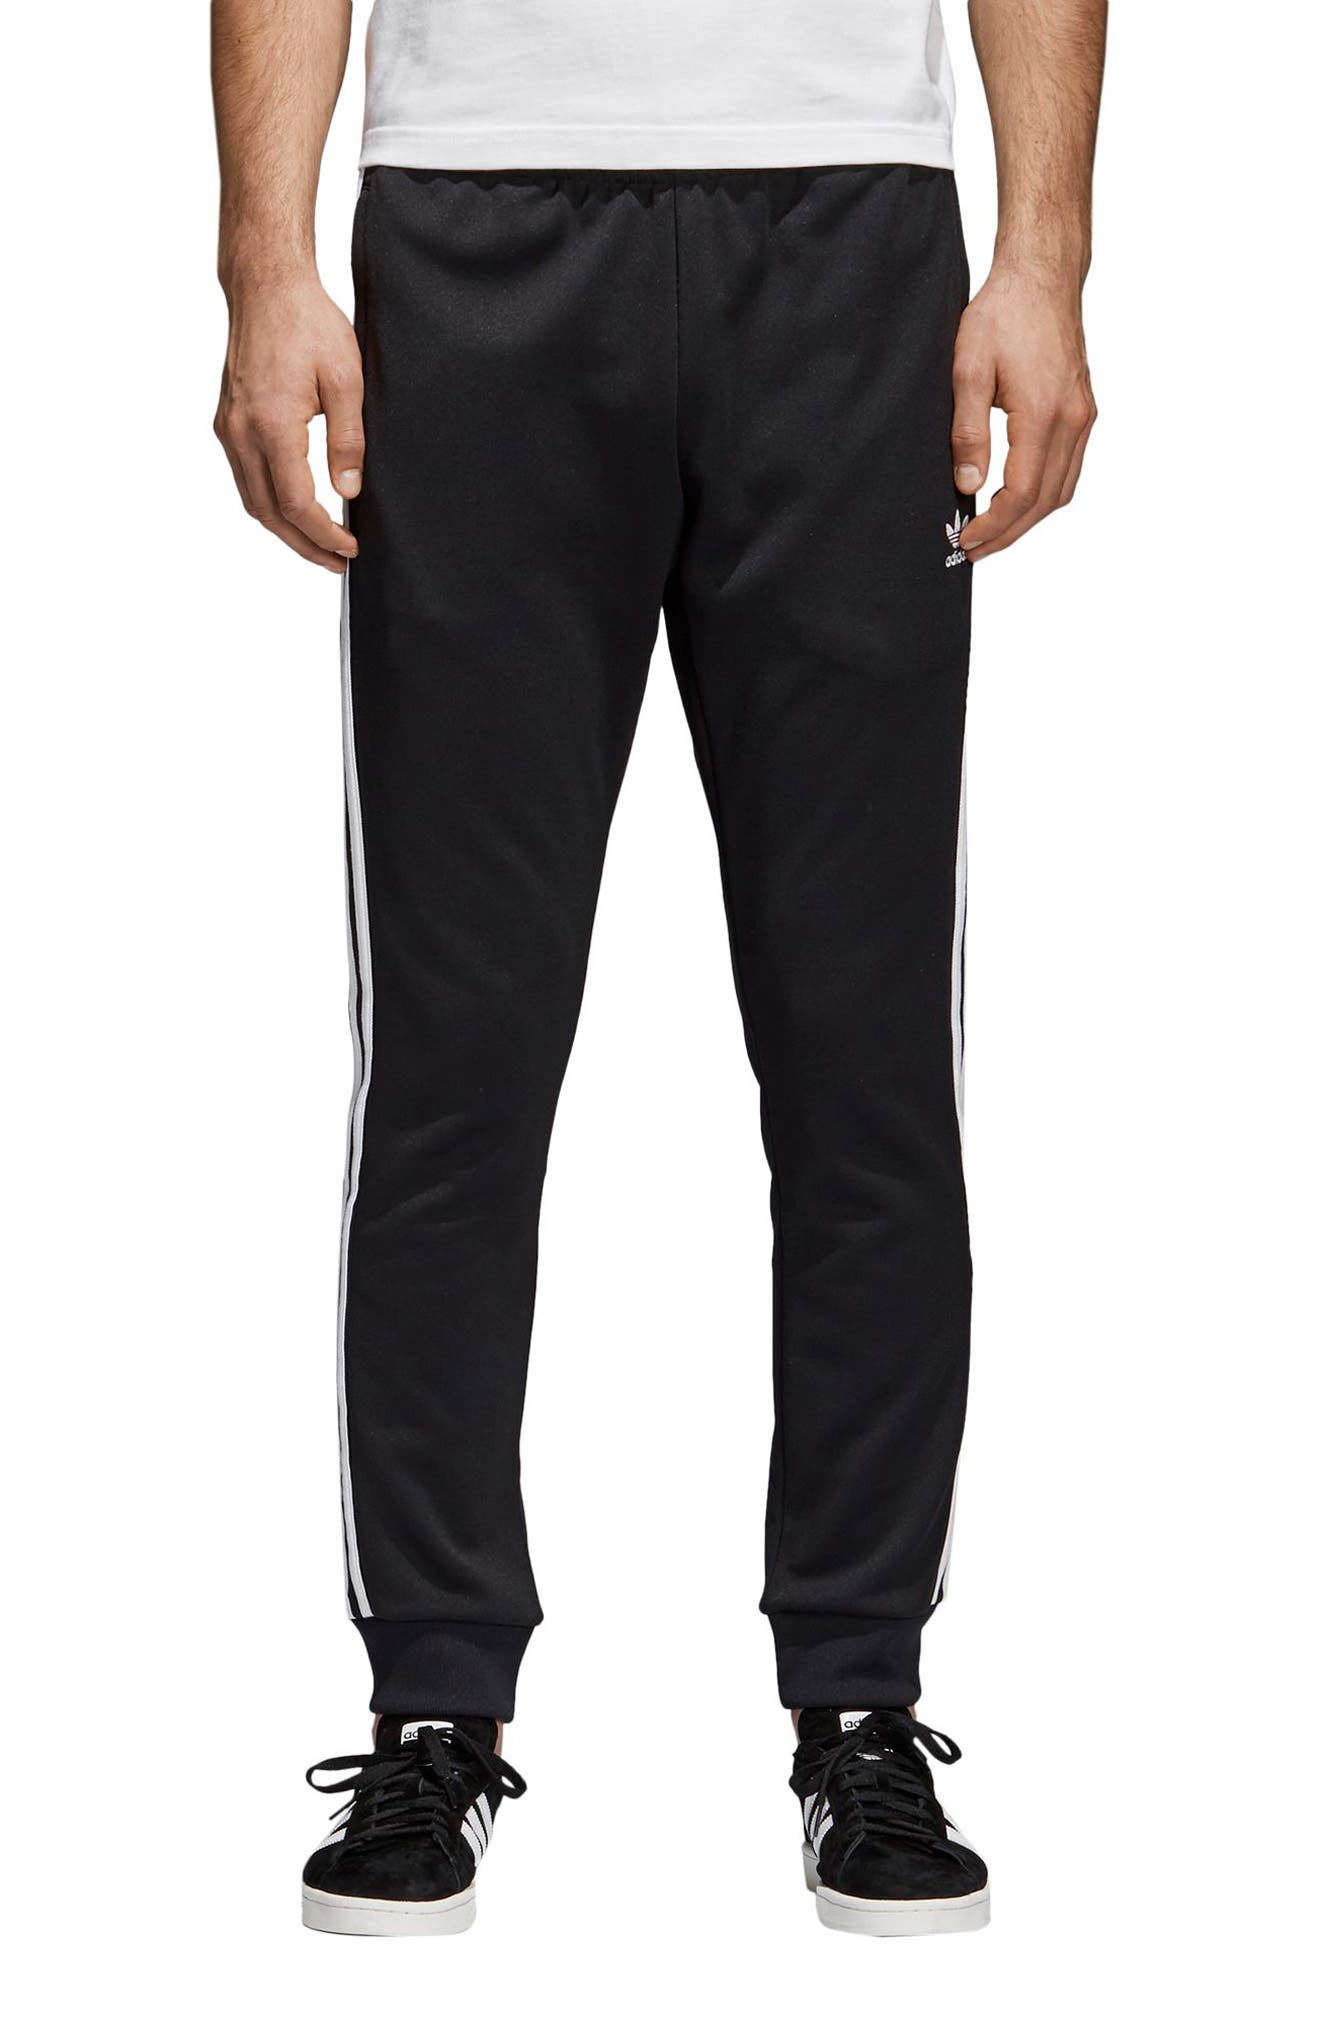 ADIDAS ORIGINALS, Track Pants, Main thumbnail 1, color, BLACK